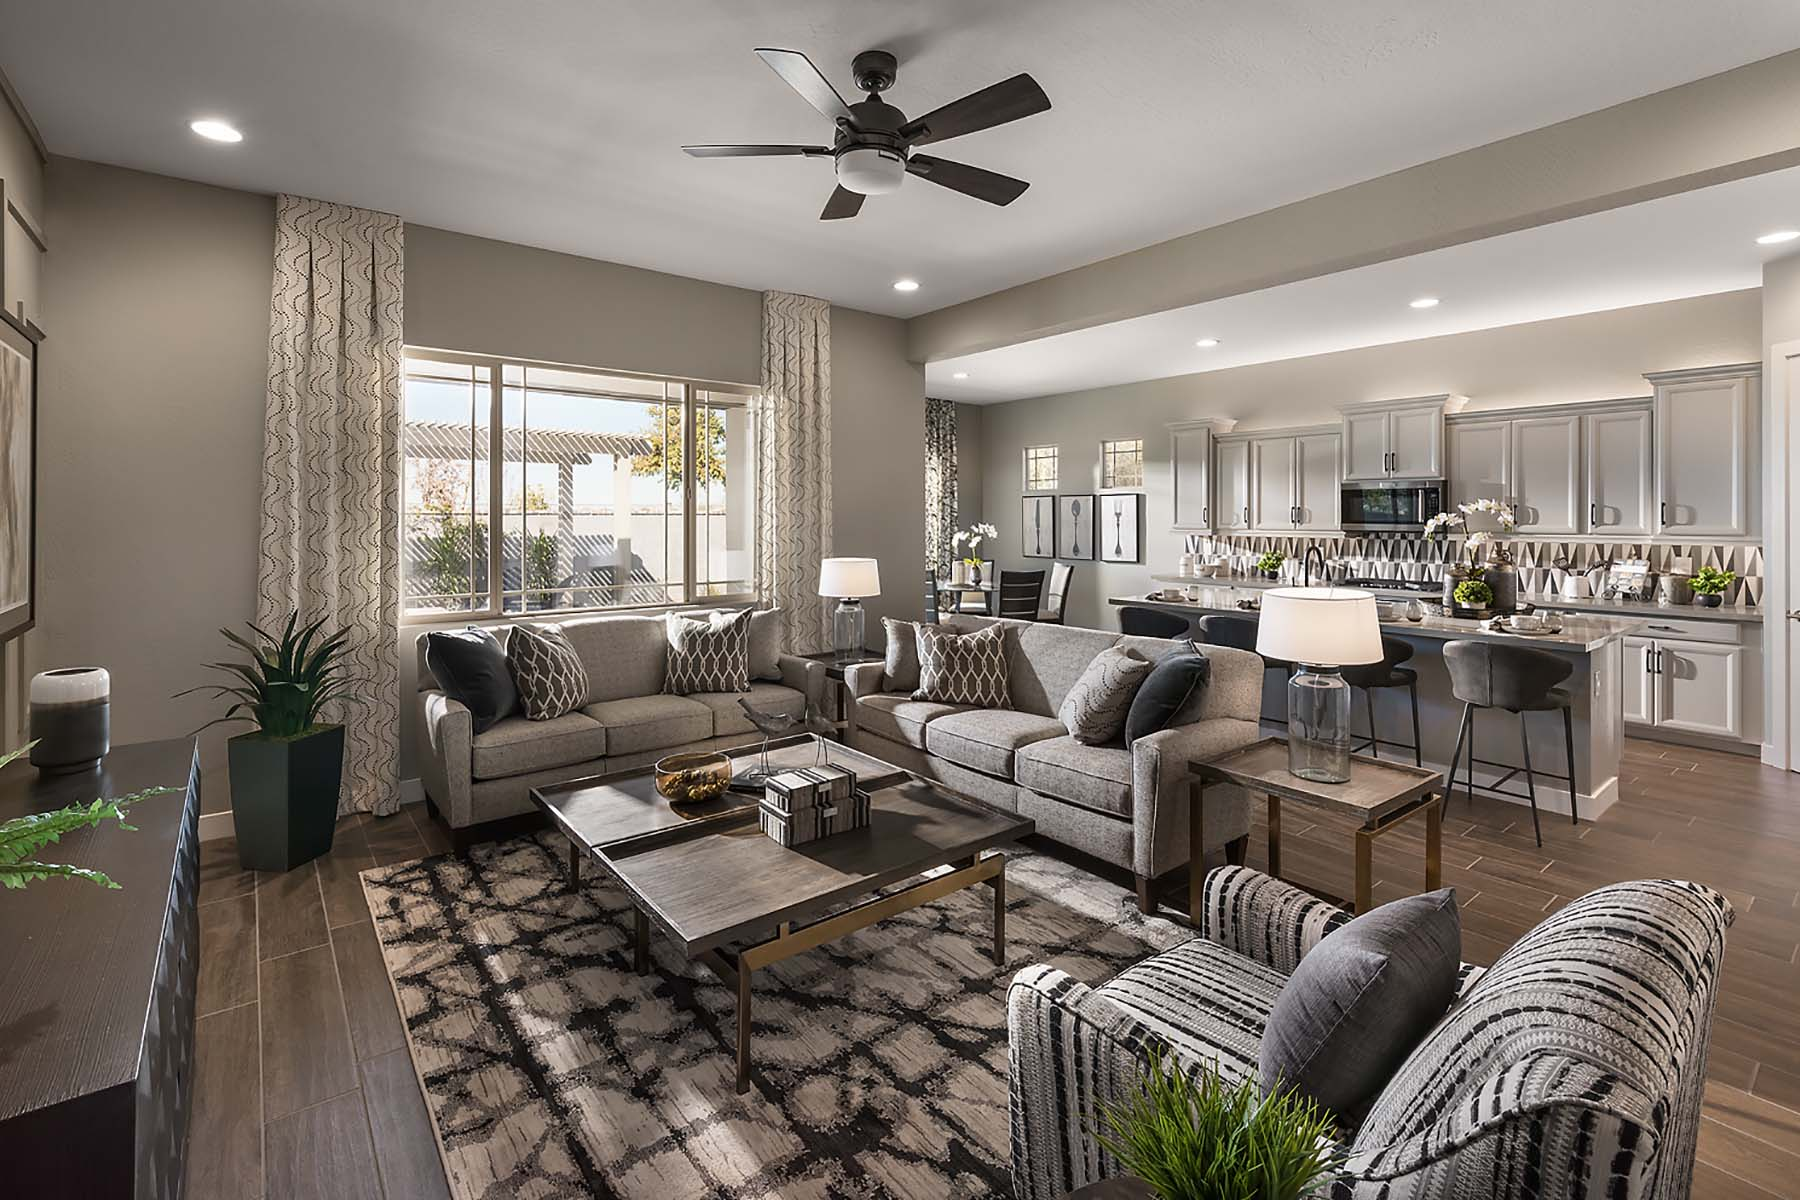 Bellwood Plan Greatroom at Vista Diamante at Camelback Ranch in Phoenix Arizona by Mattamy Homes